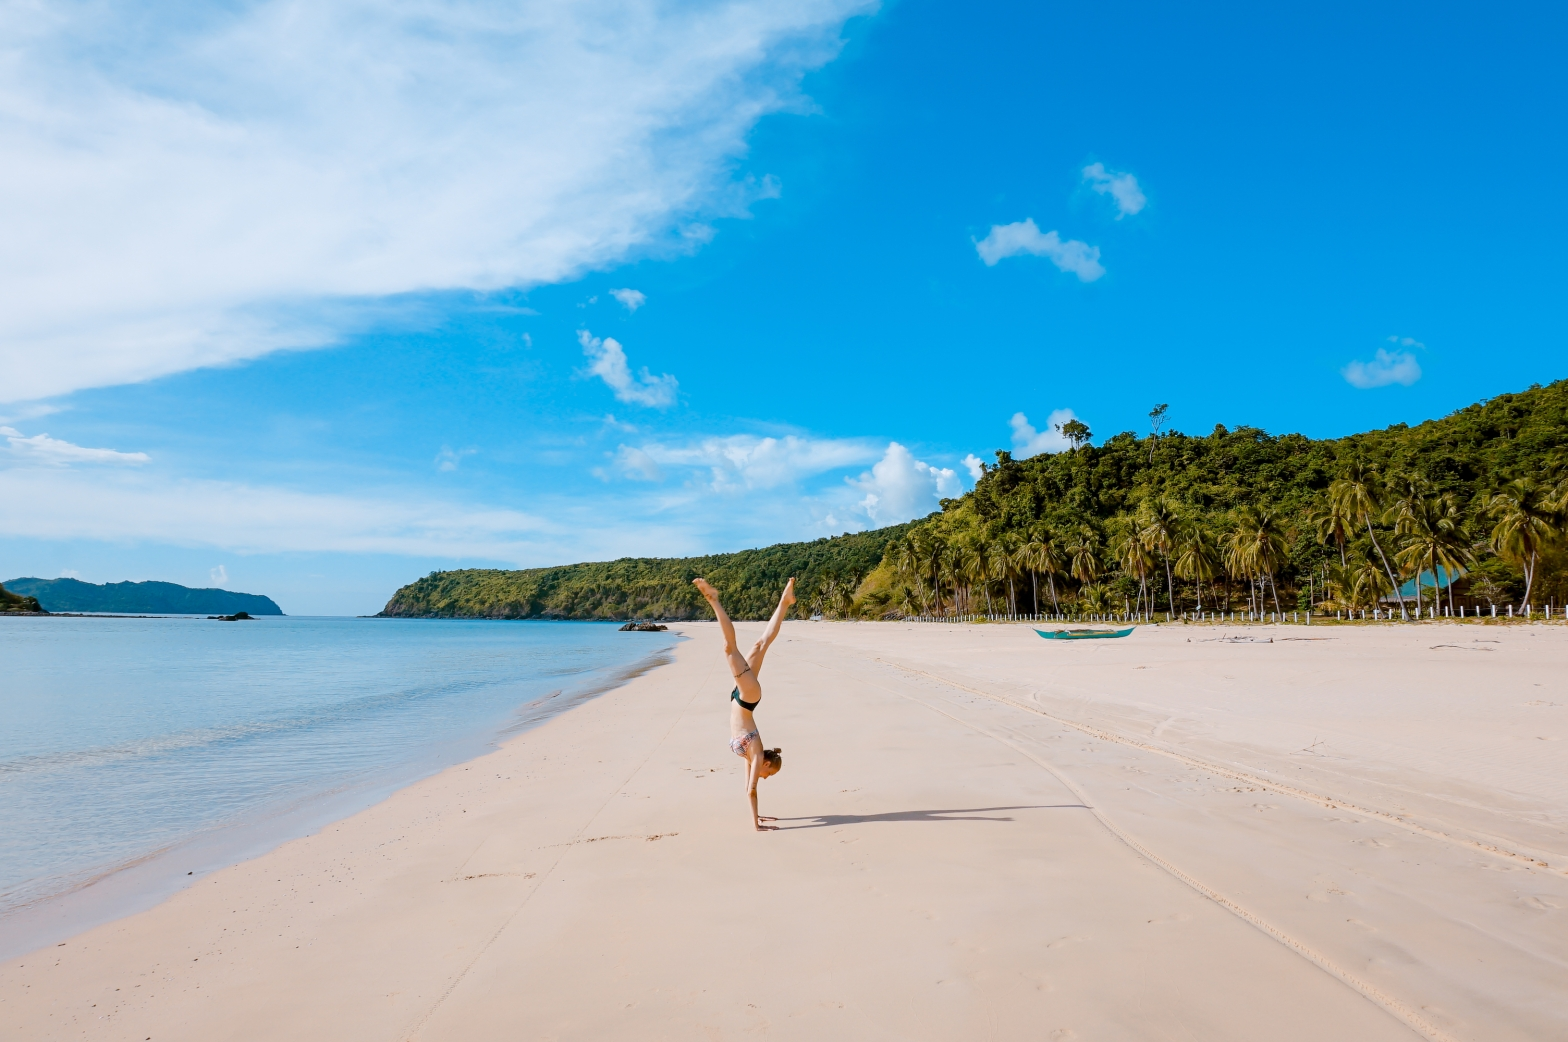 woman in bikini doing handstand on a tropical beach